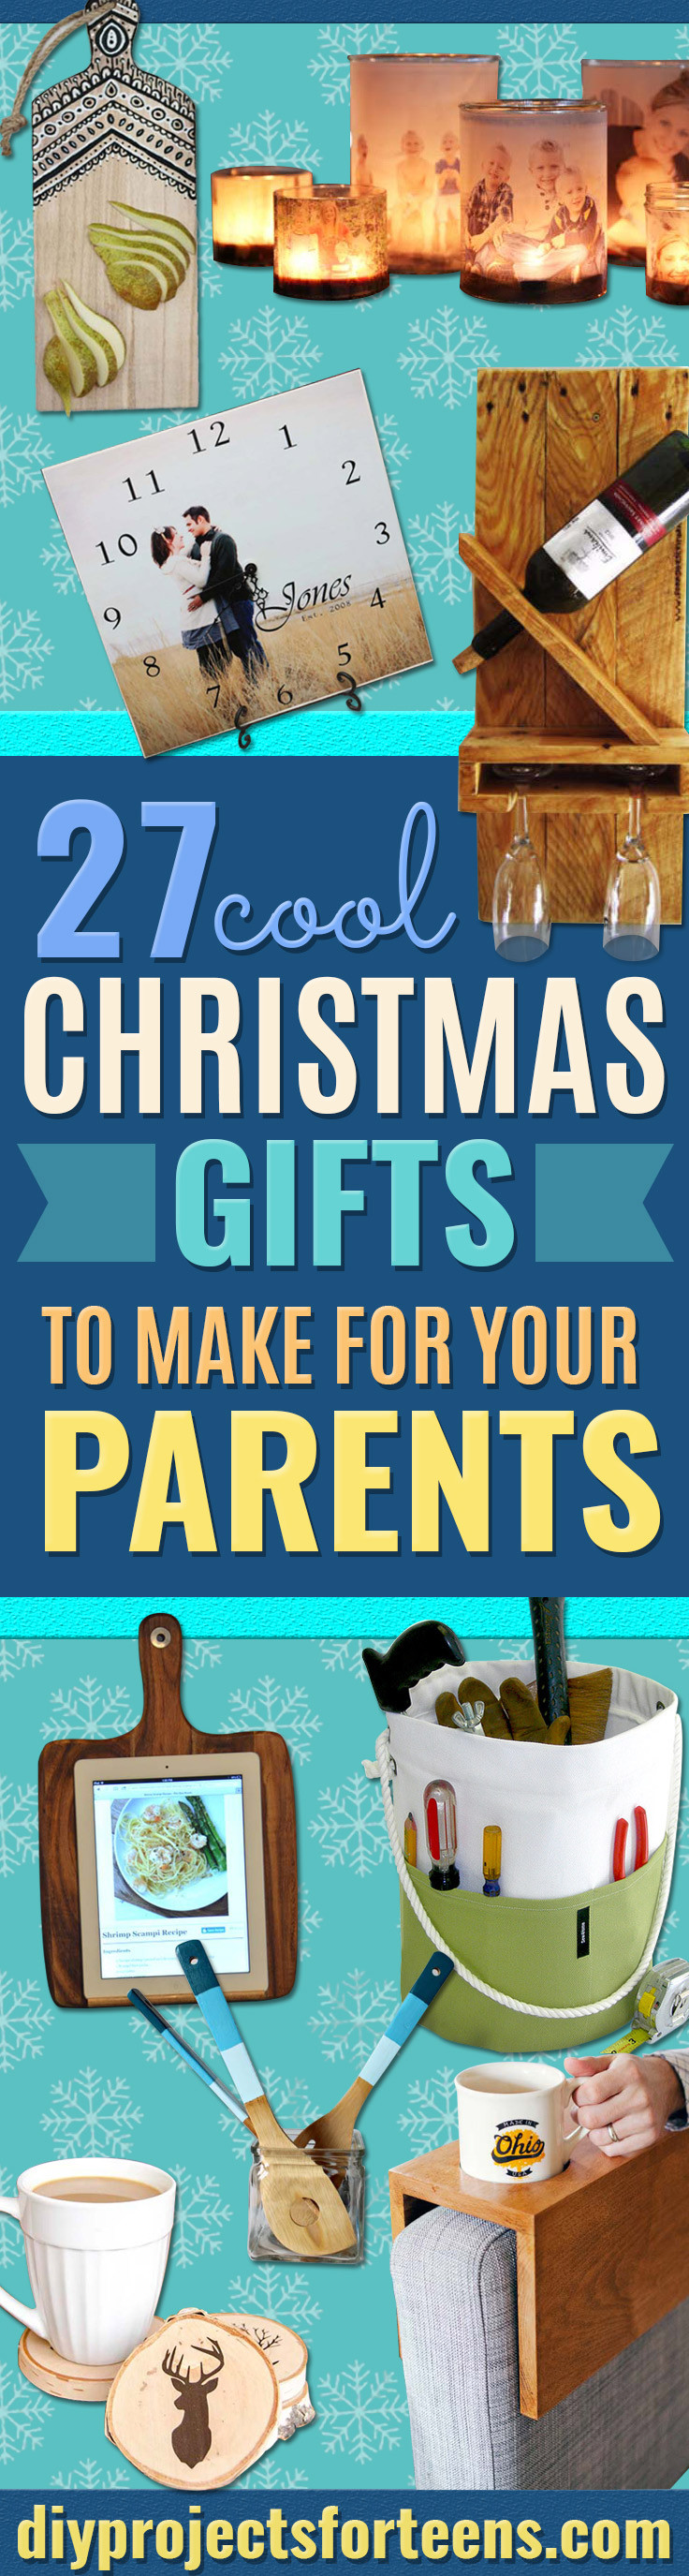 Christmas Gift Ideas For Moms And Dads  Cool Christmas Gifts To Make For Your Parents